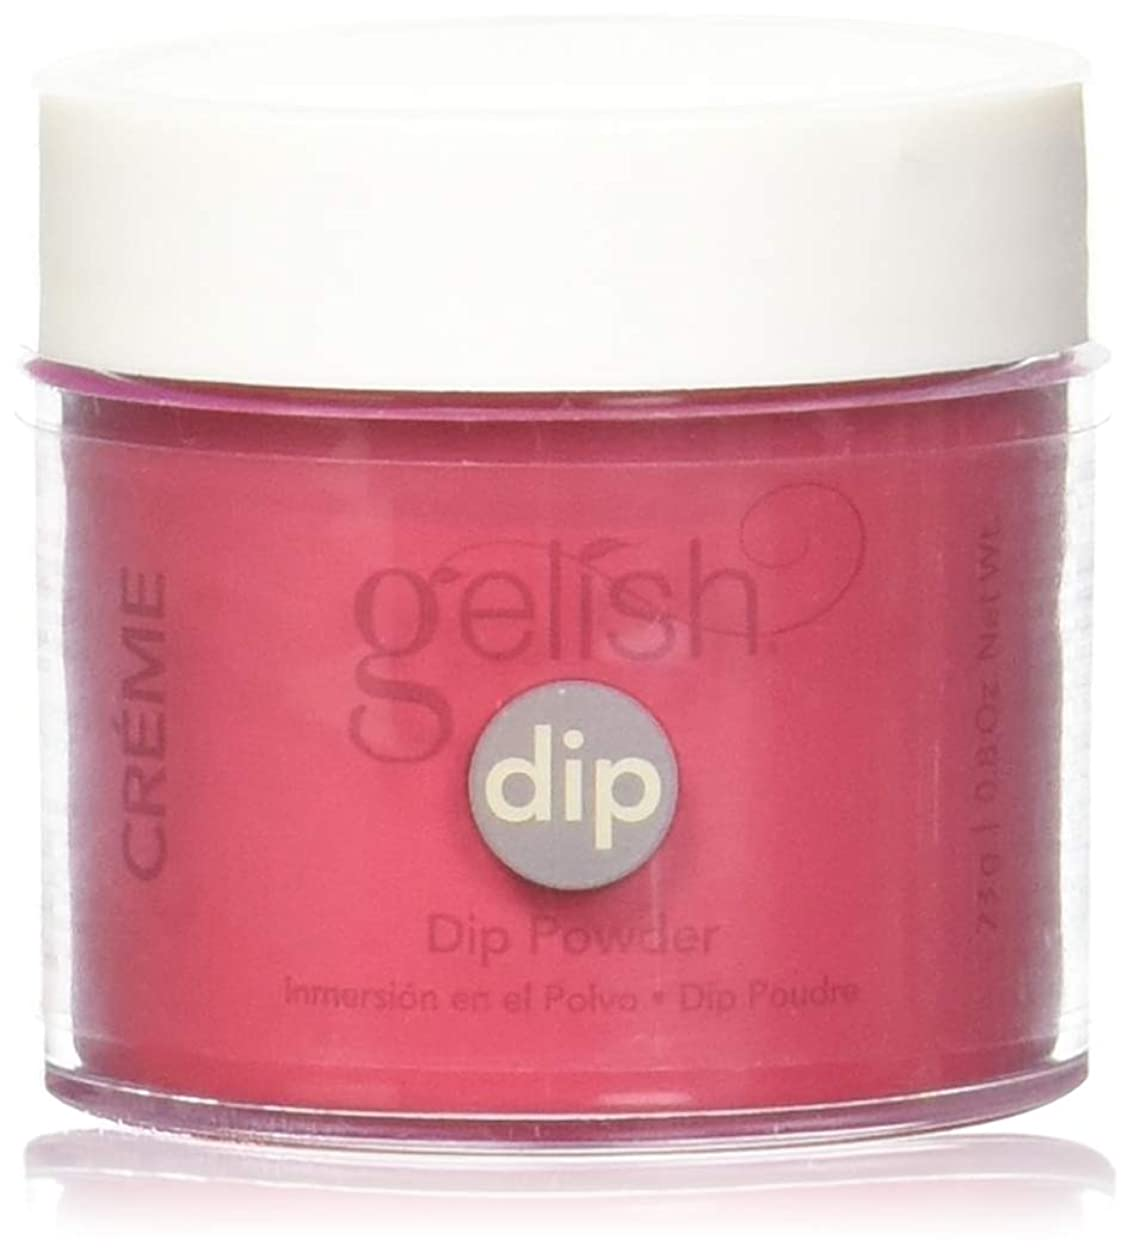 関係試験山岳Harmony Gelish - Acrylic Dip Powder - Hot Rod Red - 23g / 0.8oz